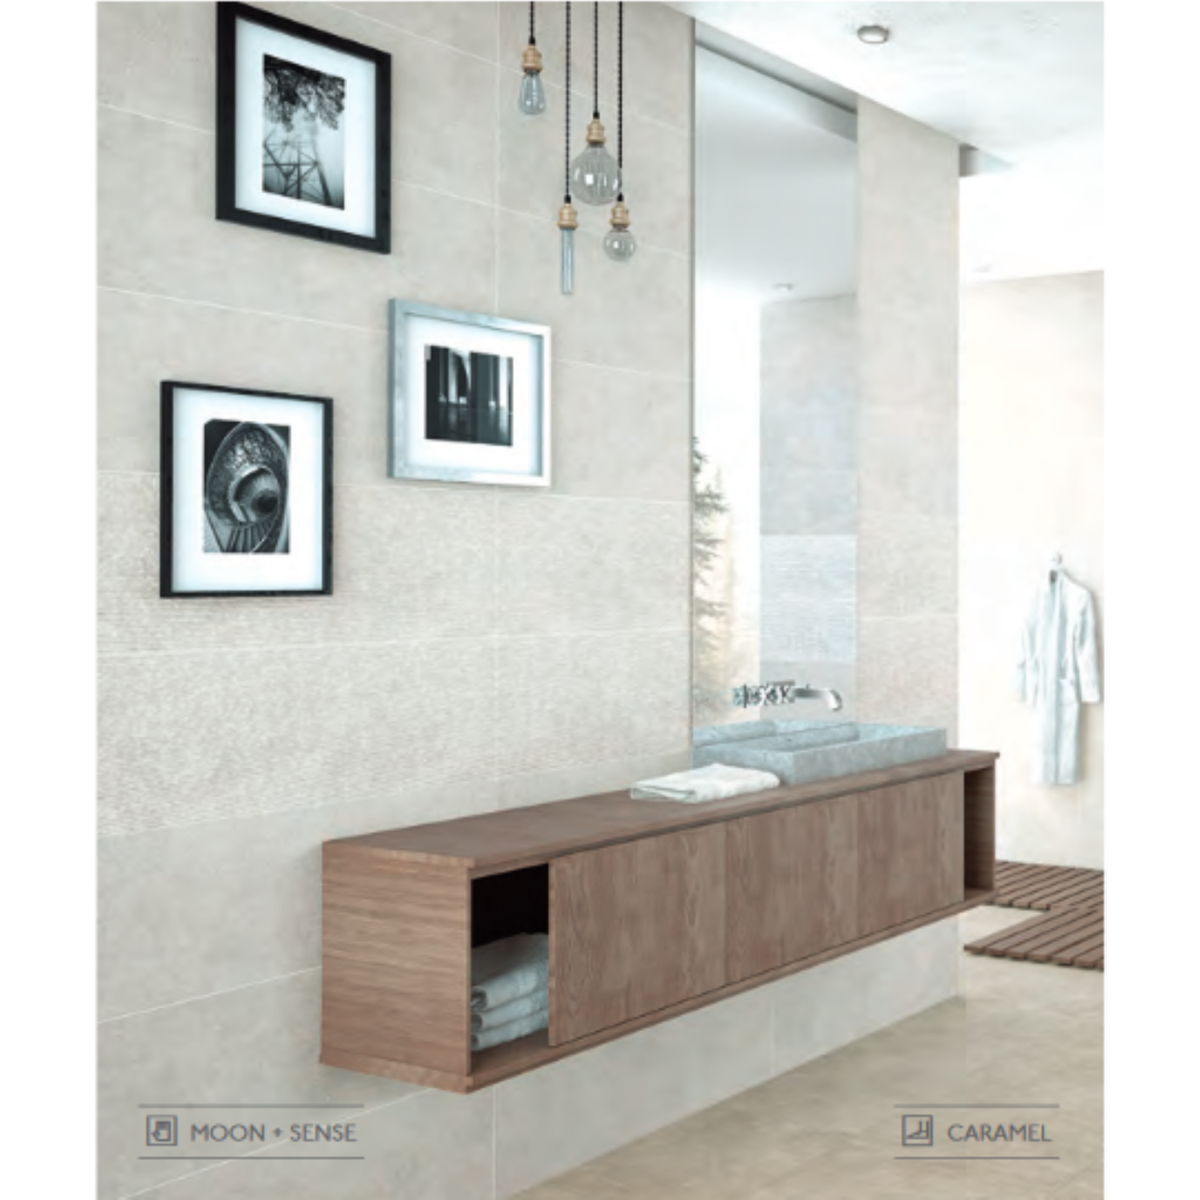 Colorker Neolith Carrelage Mural 316x100cm Caramel SW60119